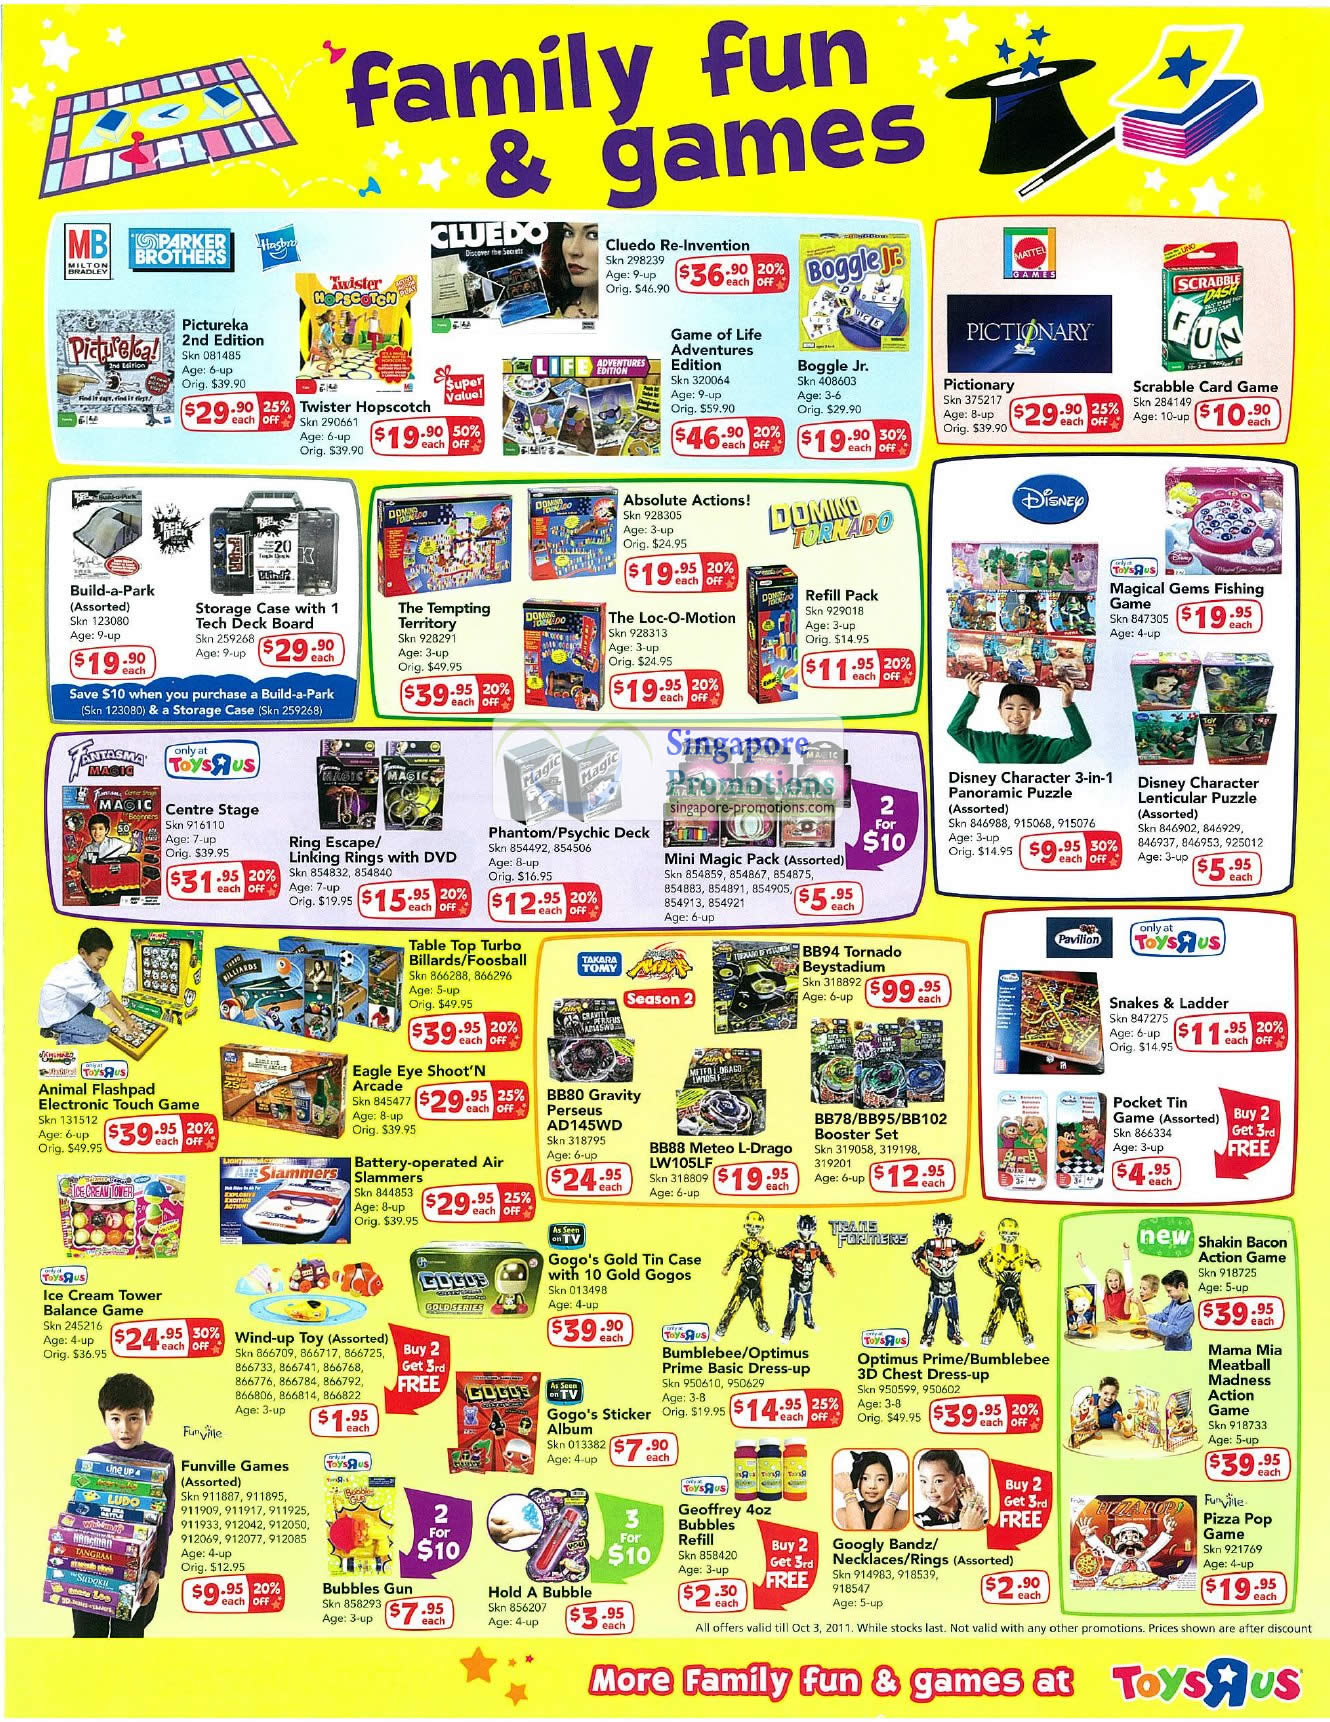 Family Fun Games, Parker Brothers, Hasbro, Milton Bradley MB, Pictureka, Cluedo Re-Invention, Boggle Jr, Game of Life, Mattel Pictionary